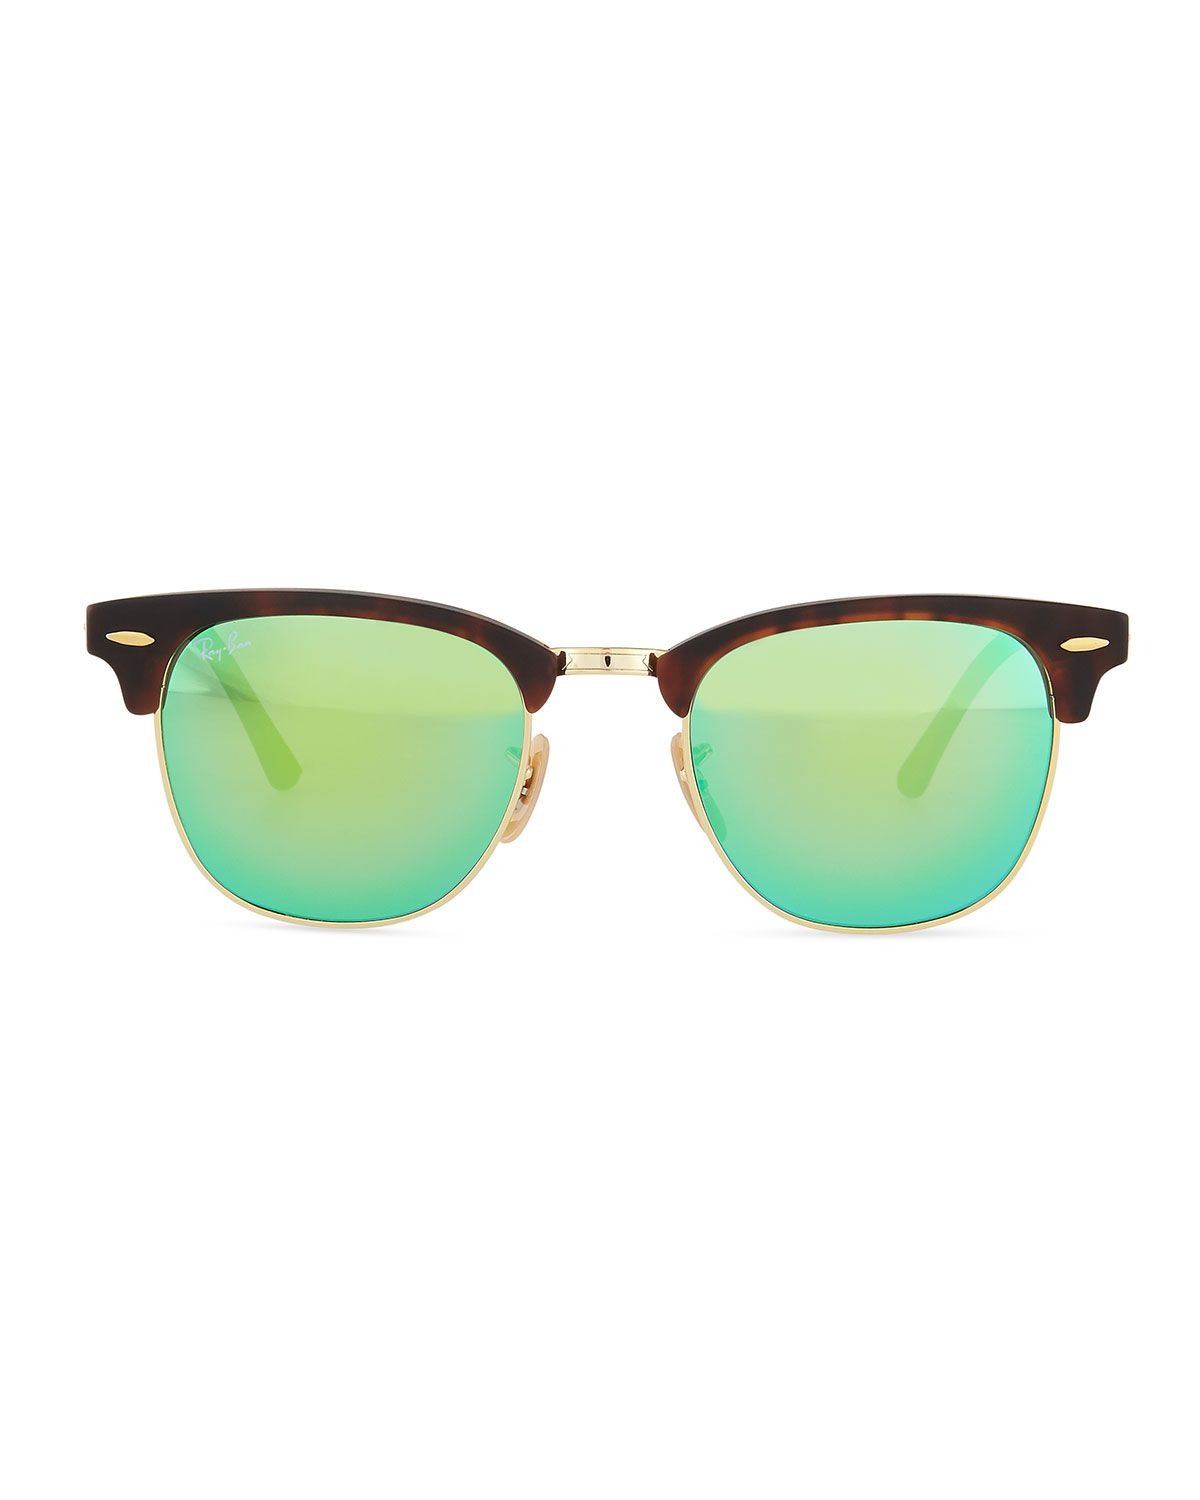 78f484ff5 Clubmaster Half-Rimmed Sunglasses Tortoise/Green | Wish List | Ray ...